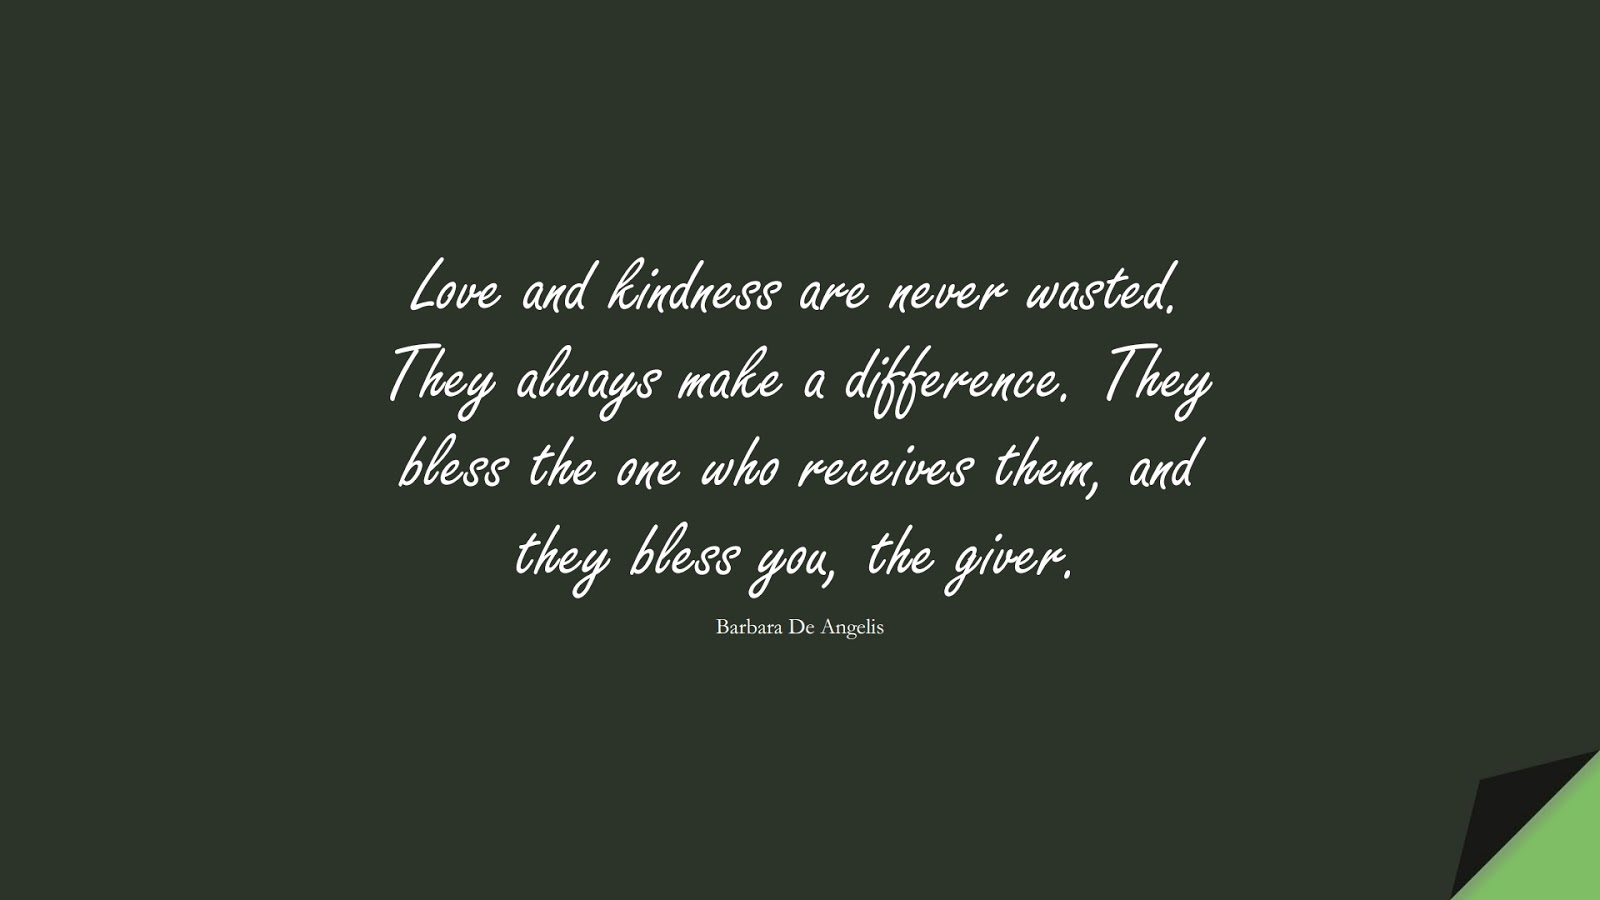 Love and kindness are never wasted. They always make a difference. They bless the one who receives them, and they bless you, the giver. (Barbara De Angelis);  #LoveQuotes